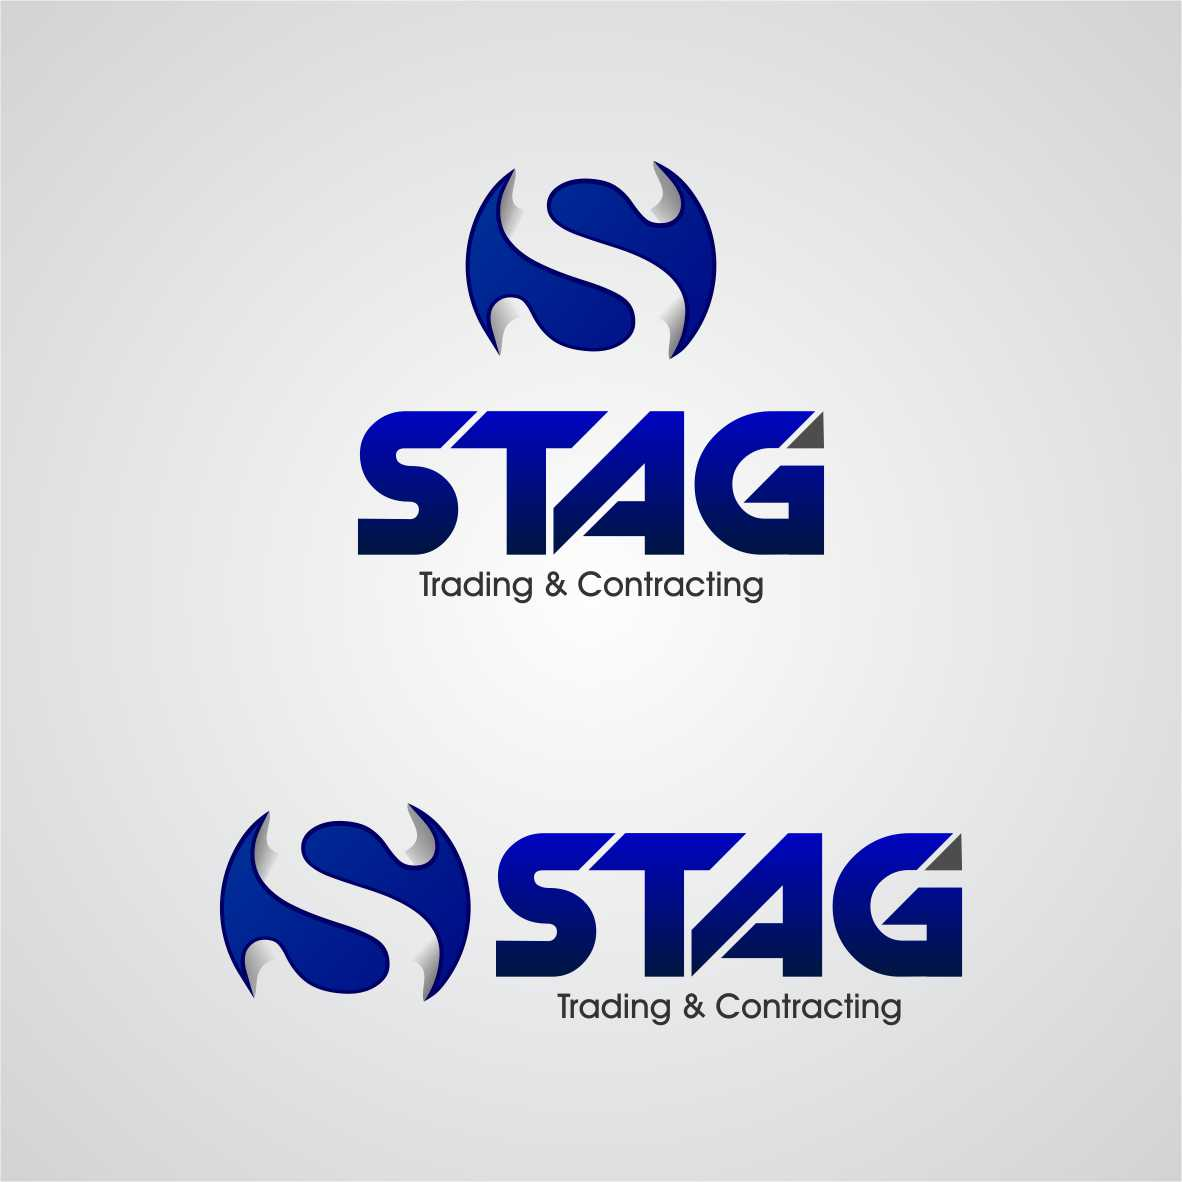 Logo Design by arteo_design - Entry No. 250 in the Logo Design Contest Captivating Logo Design for STAG Trading & Contracting.